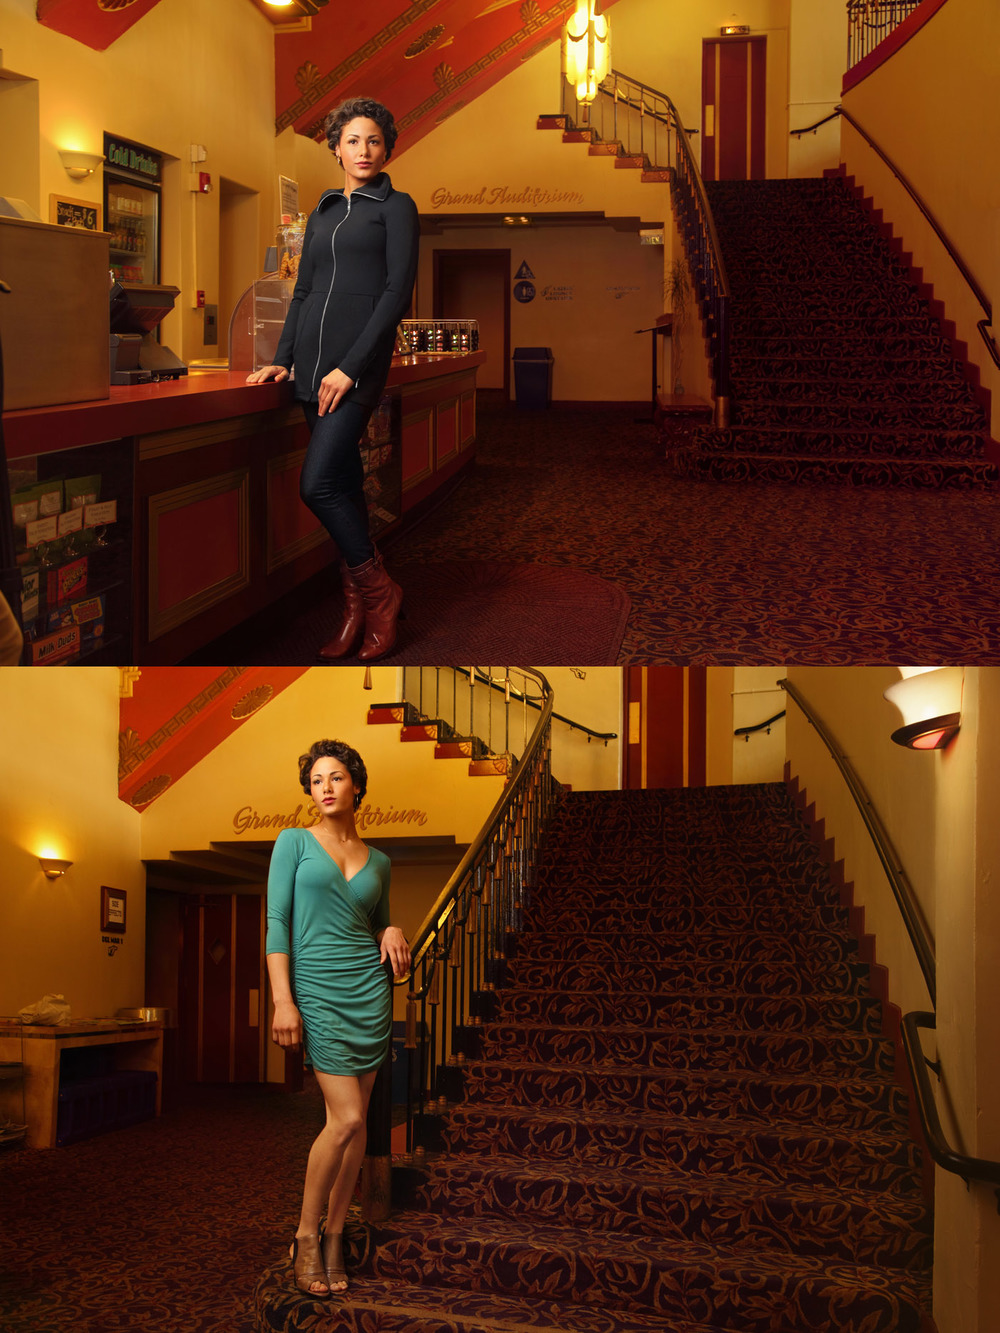 And these are a couple of of the final images from the theater.